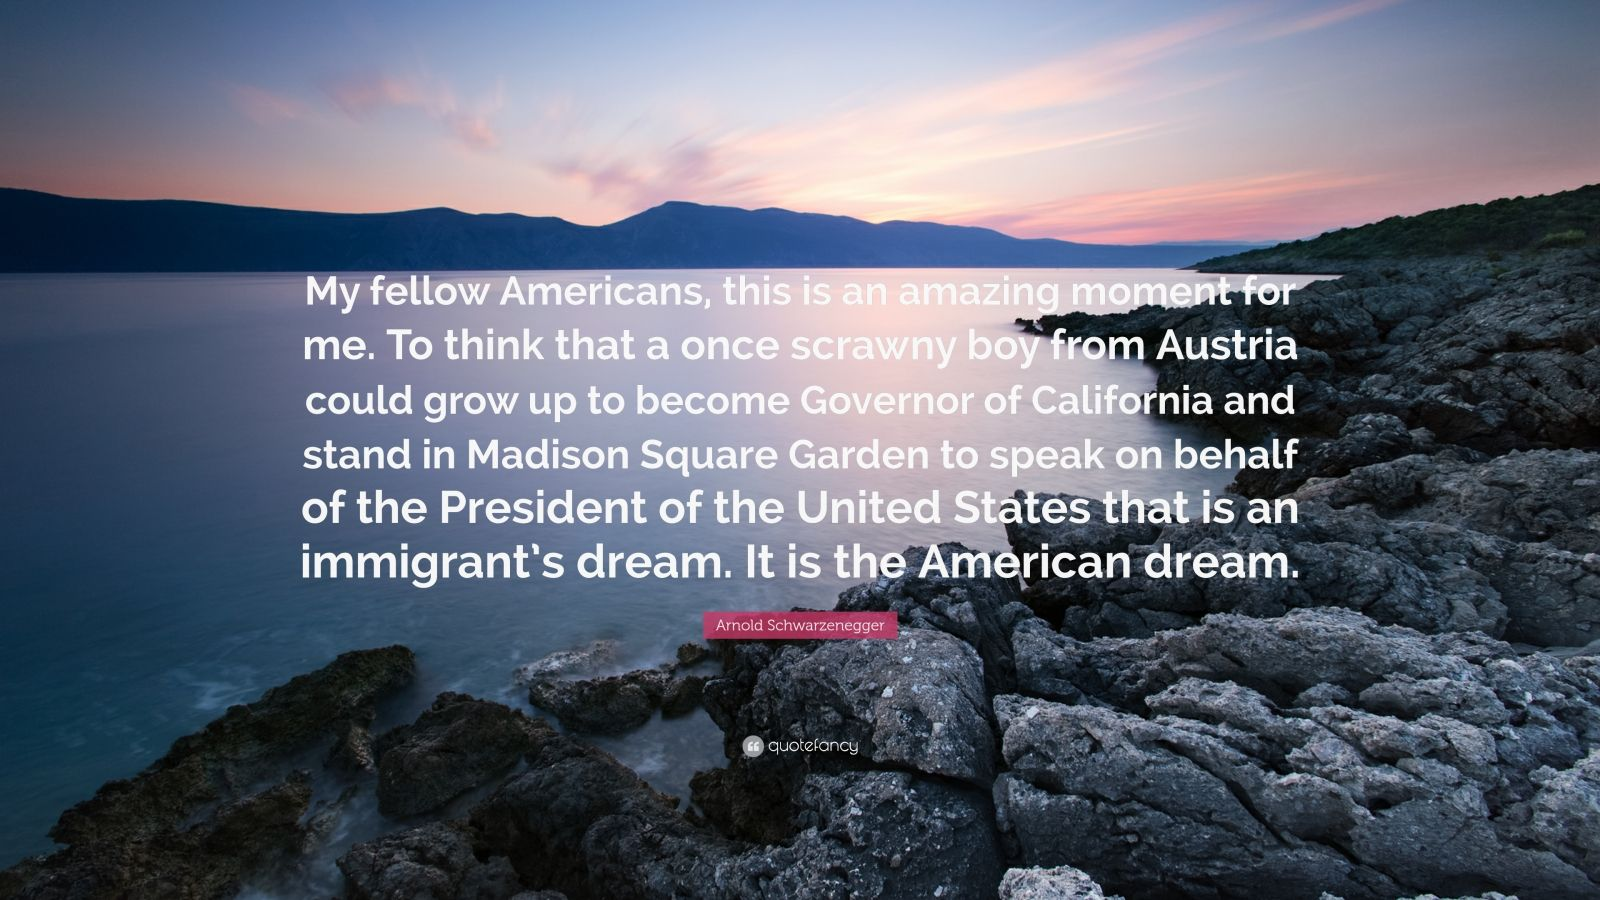 """Arnold Schwarzenegger Quote: """"My fellow Americans, this is an amazing moment for me. To think that a once scrawny boy from Austria could grow up to become Governor of California and stand in Madison Square Garden to speak on behalf of the President of the United States that is an immigrant's dream. It is the American dream."""""""